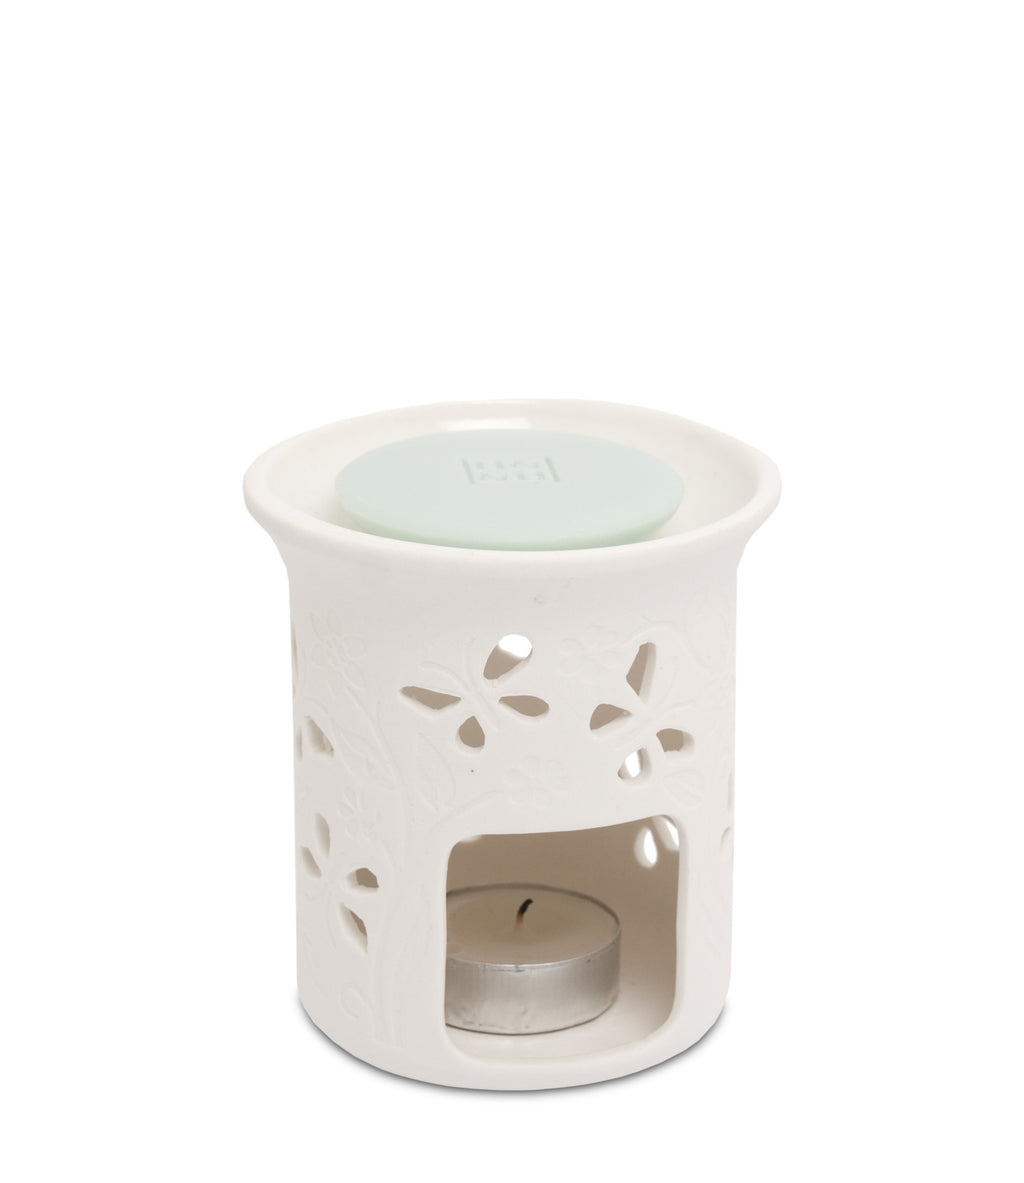 Ceramic Pillar Warmer / Burner (Butterfly) - From Heart and Home